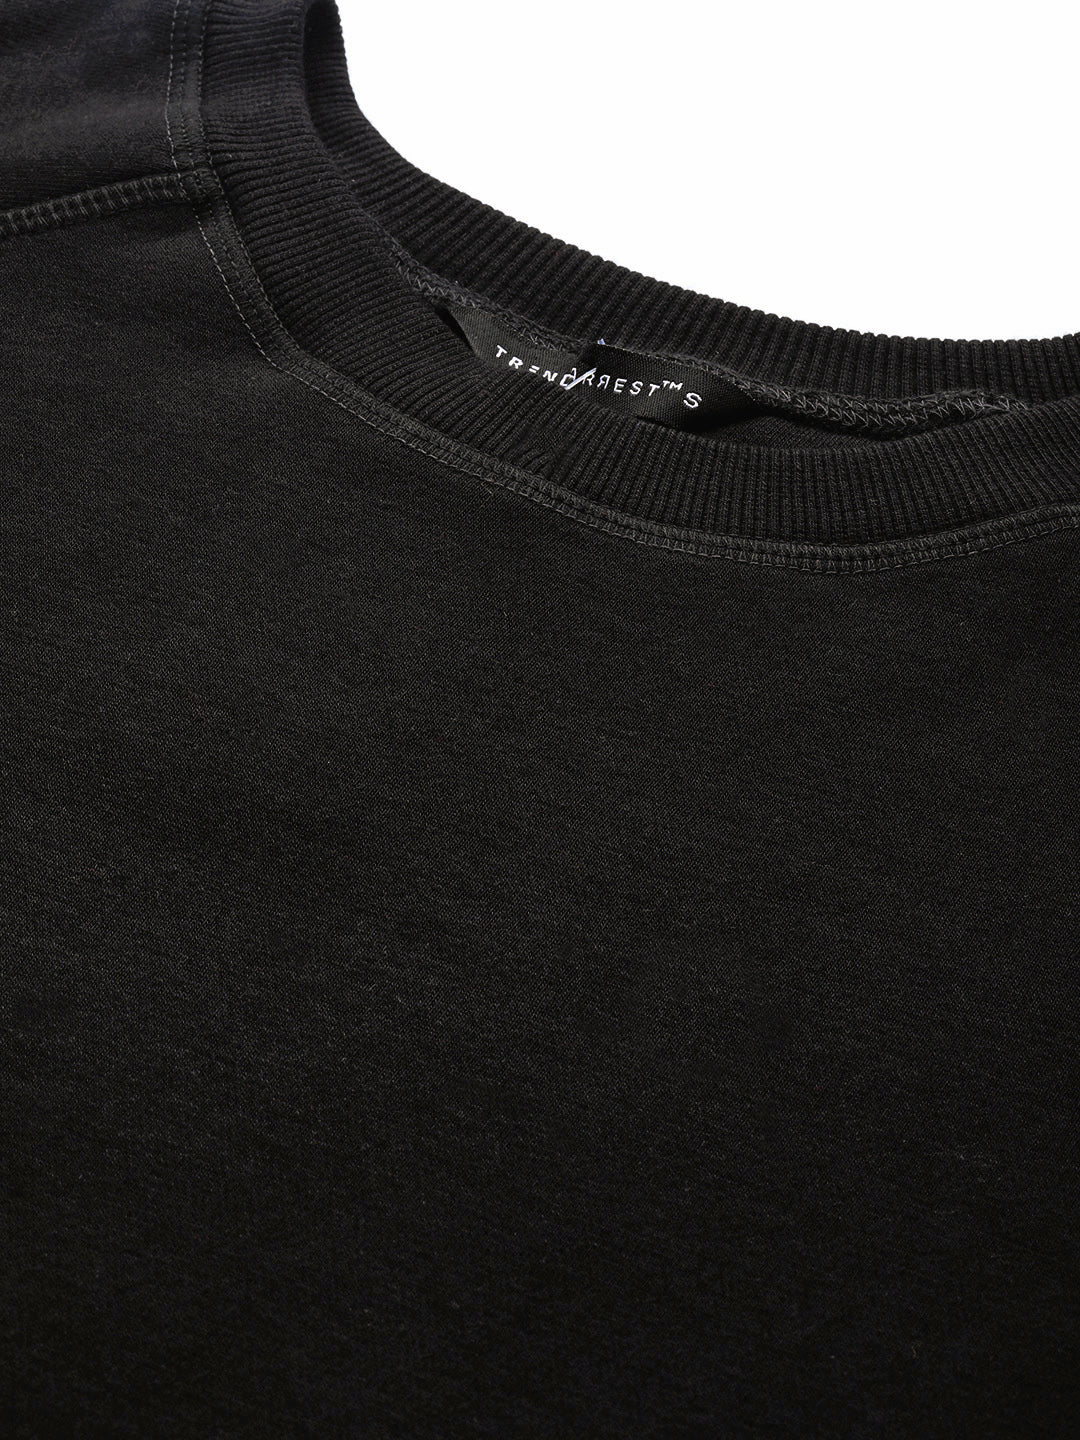 Round Neck Black SweatShirt